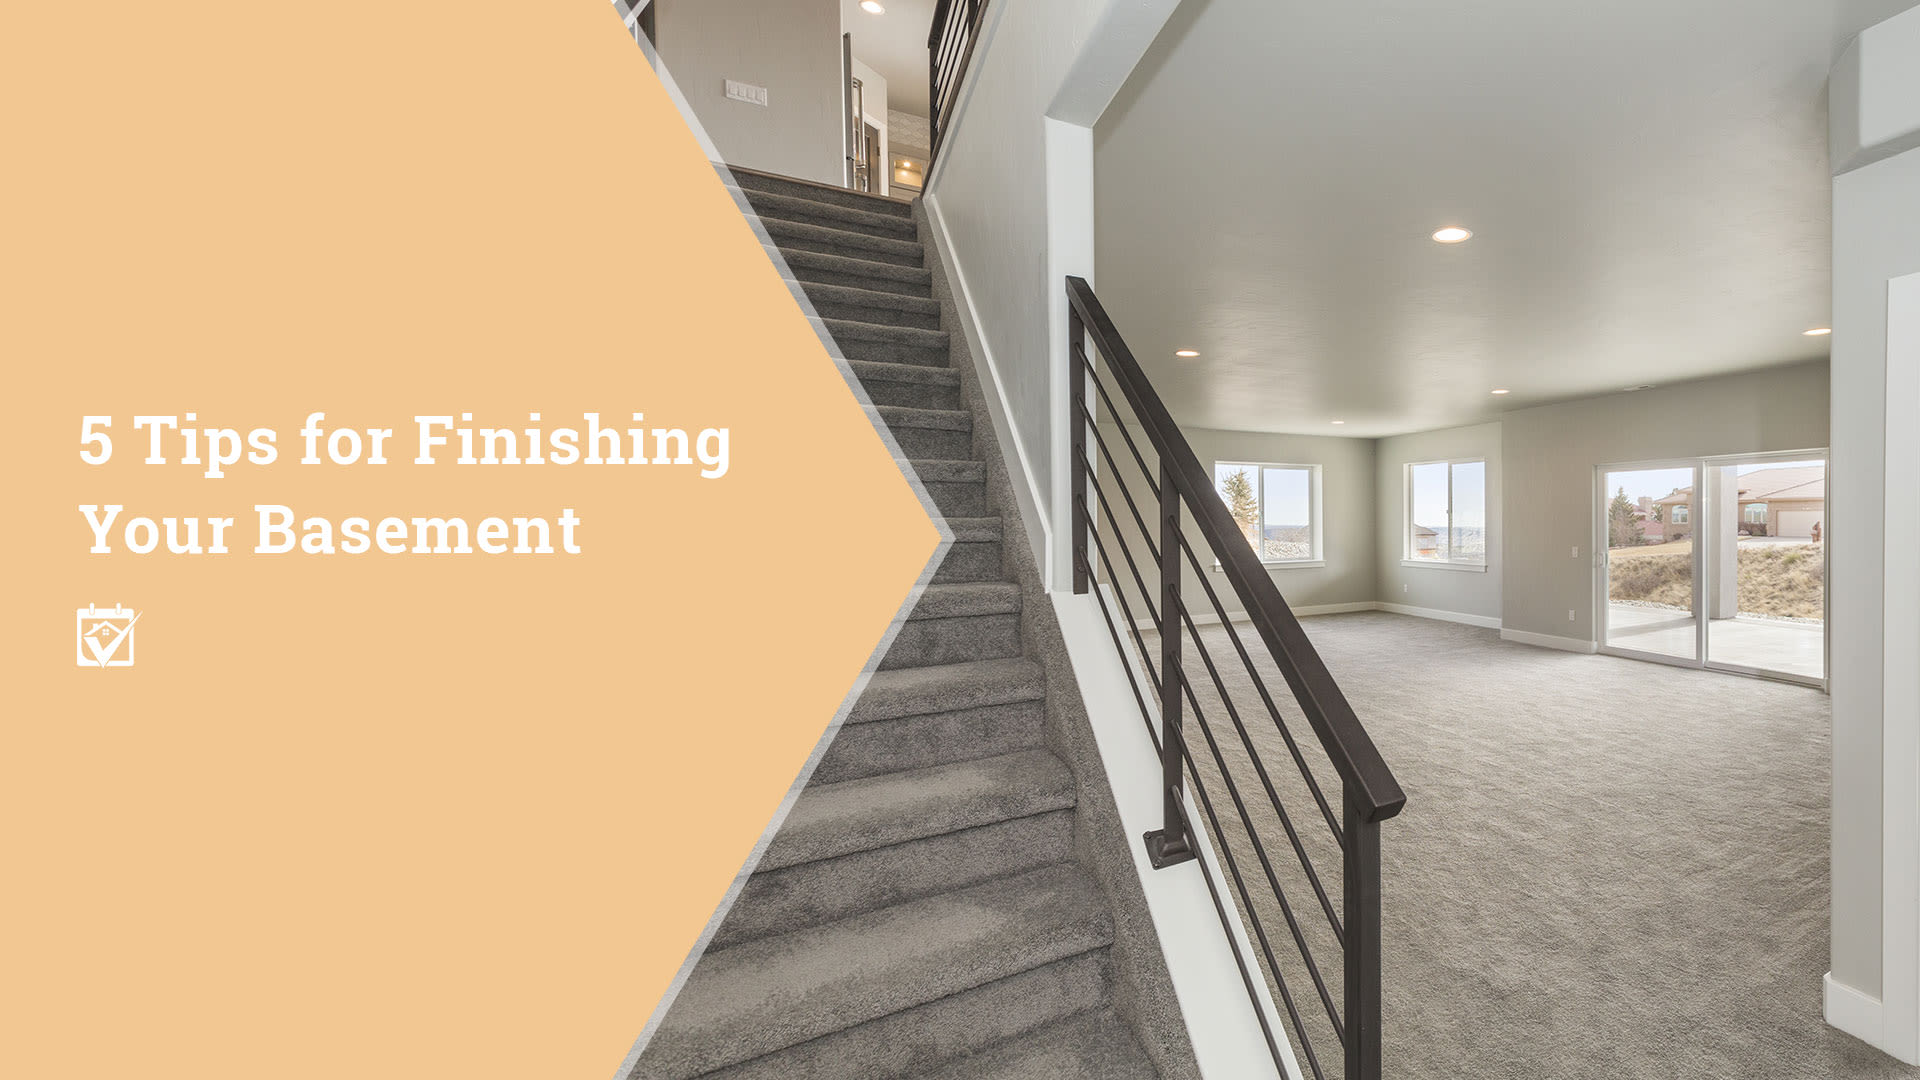 5 Tips for Finishing Your Basement